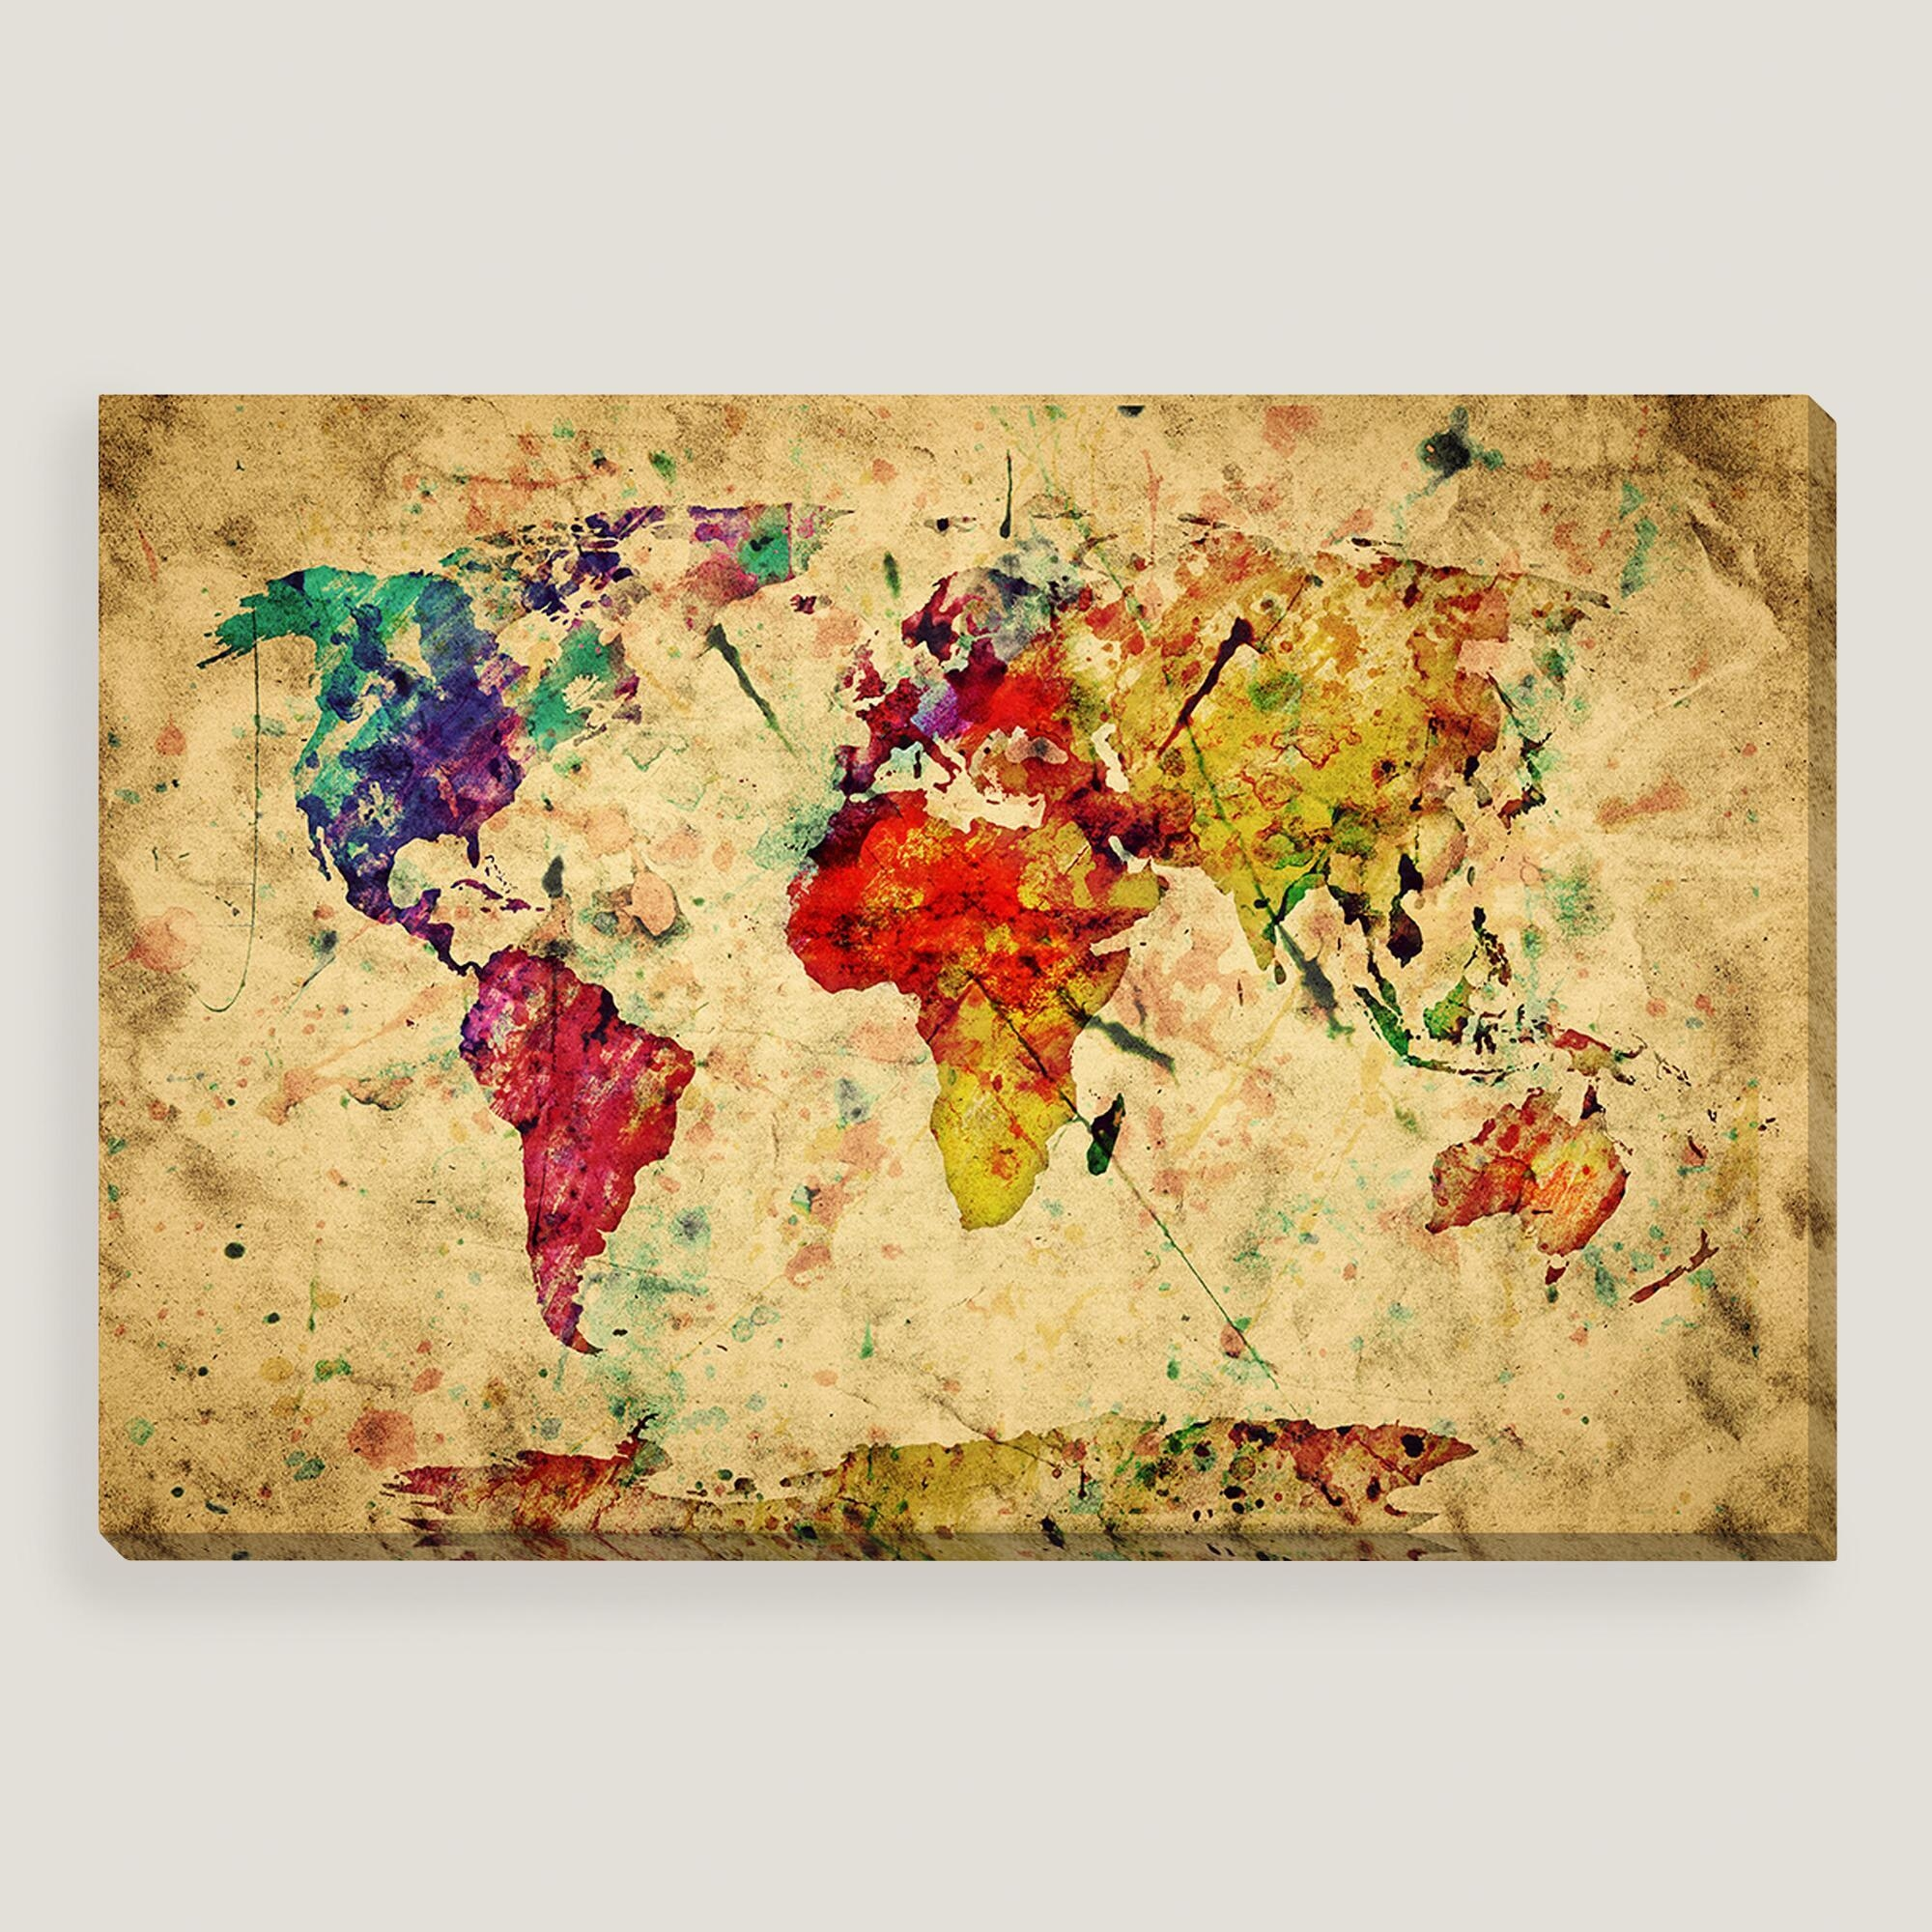 Wall Art Design Ideas: Modern Painting Vintage World Map Wall Art Regarding Vintage Map Wall Art (Image 17 of 20)